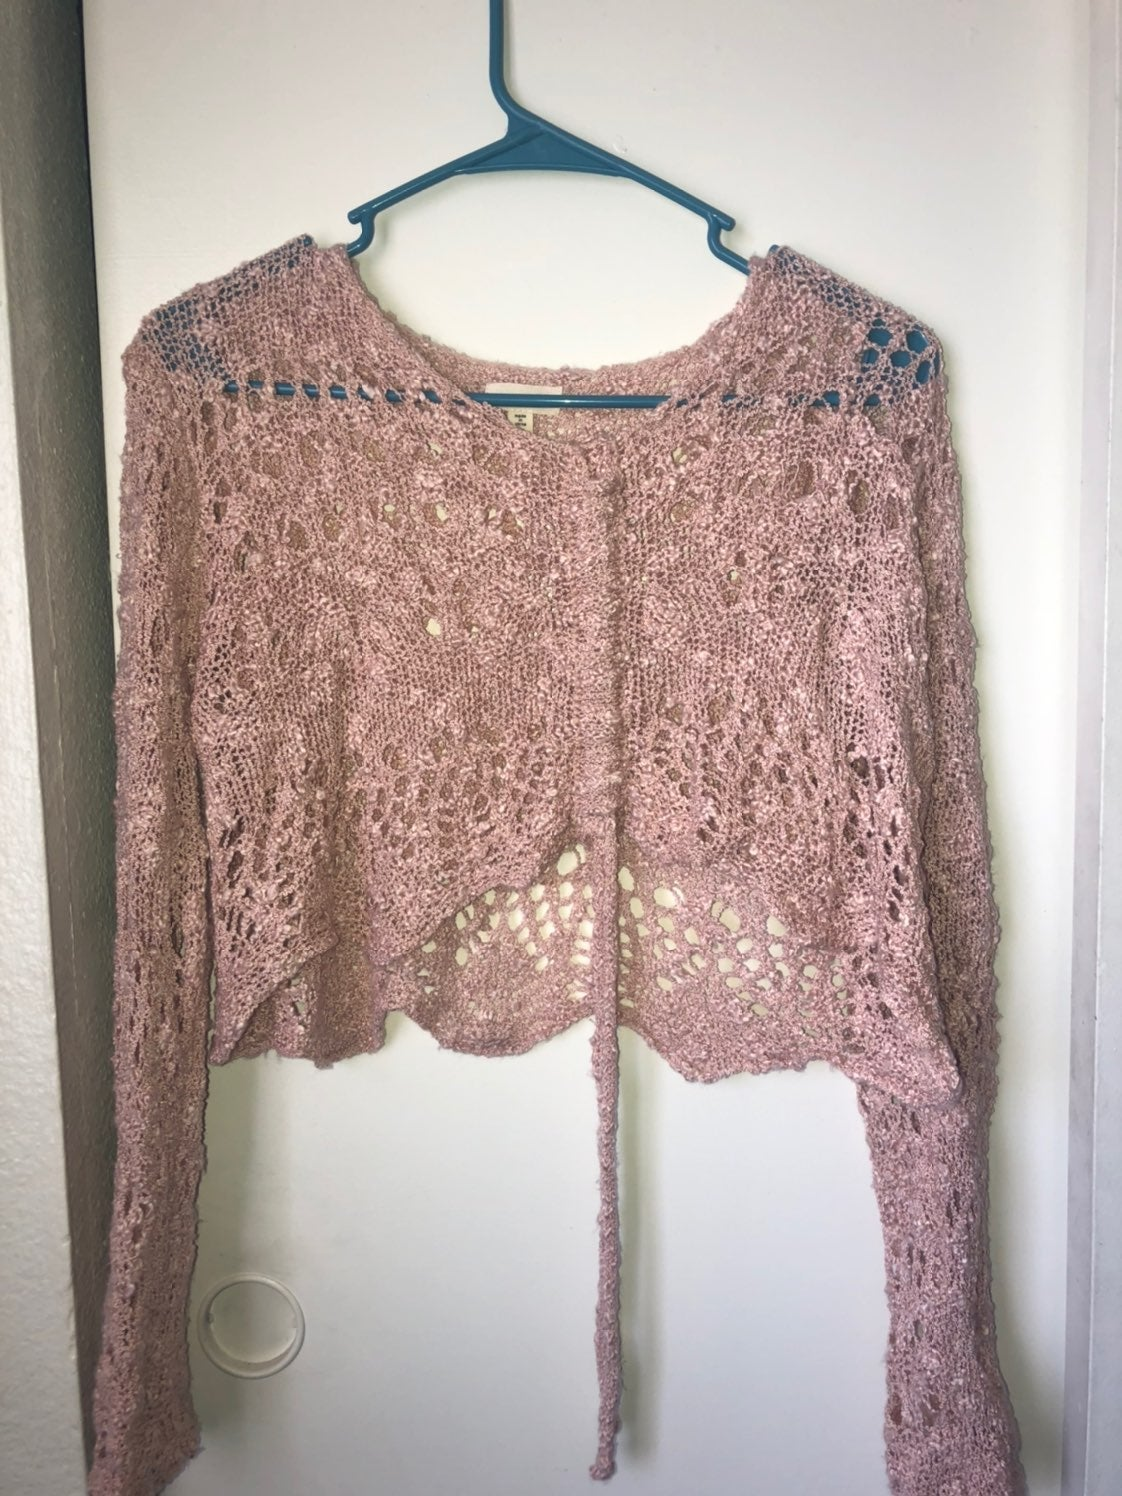 Knit Top for Coverups